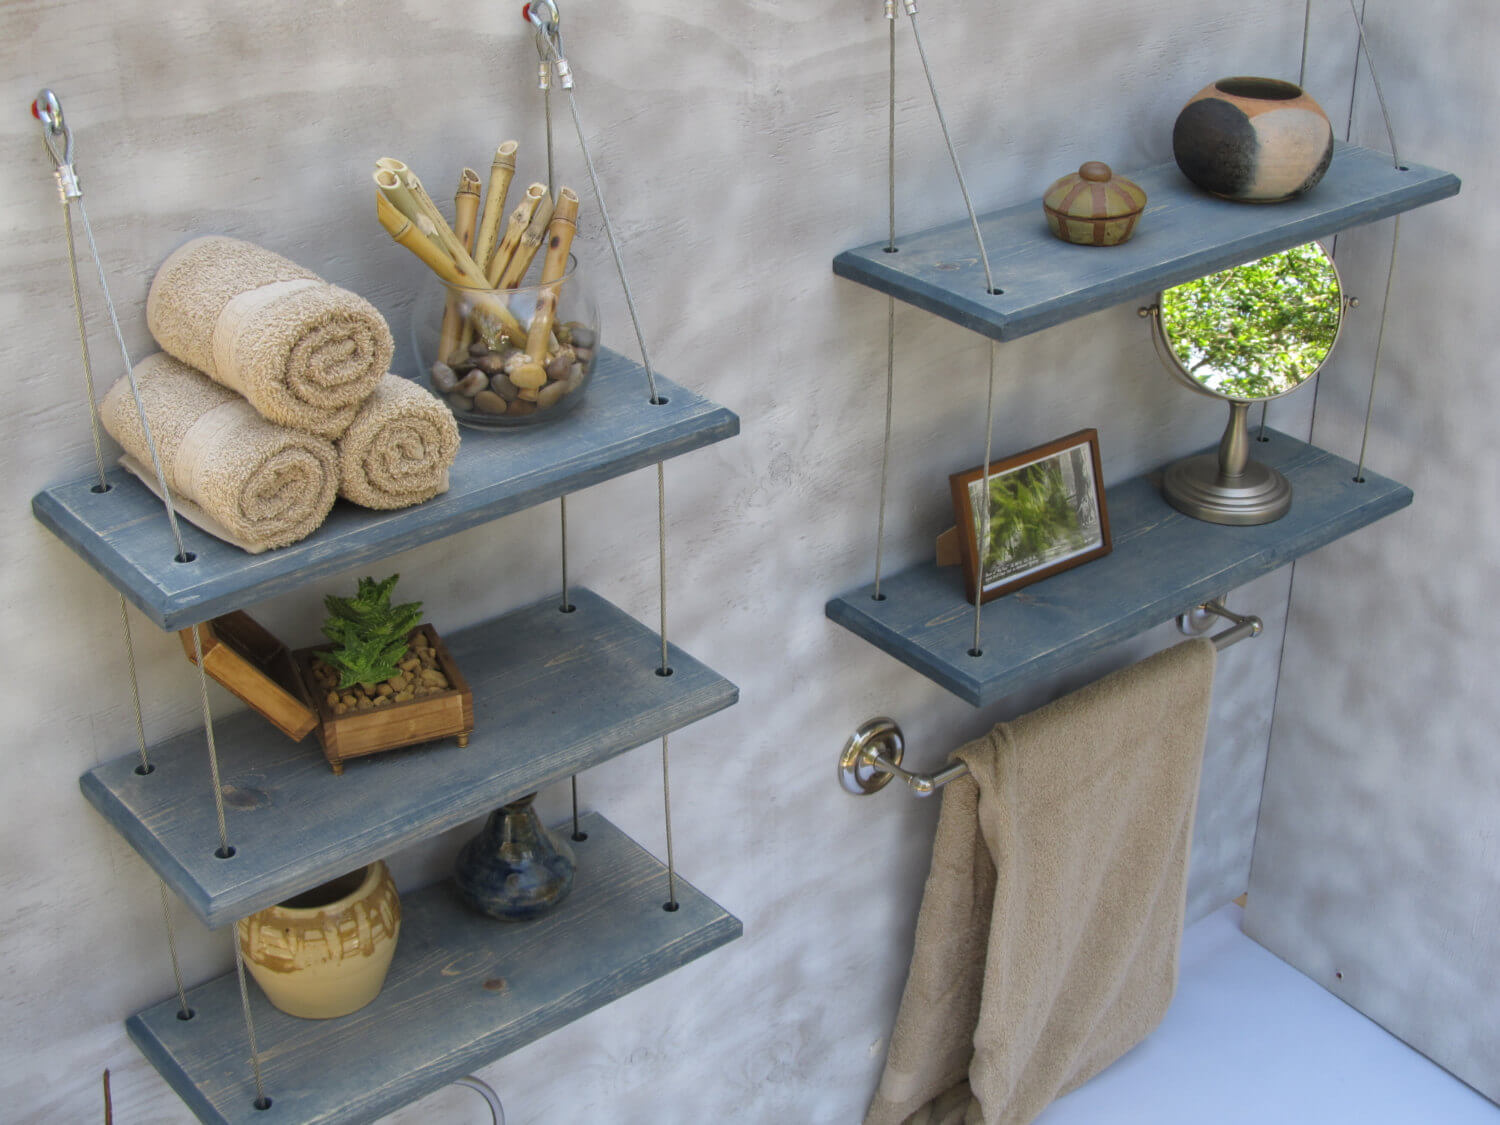 Bathrooms floating shelves with small and practical blue shelves without any hidden containers. The blue shelves are kept in place with sturdy ropes.